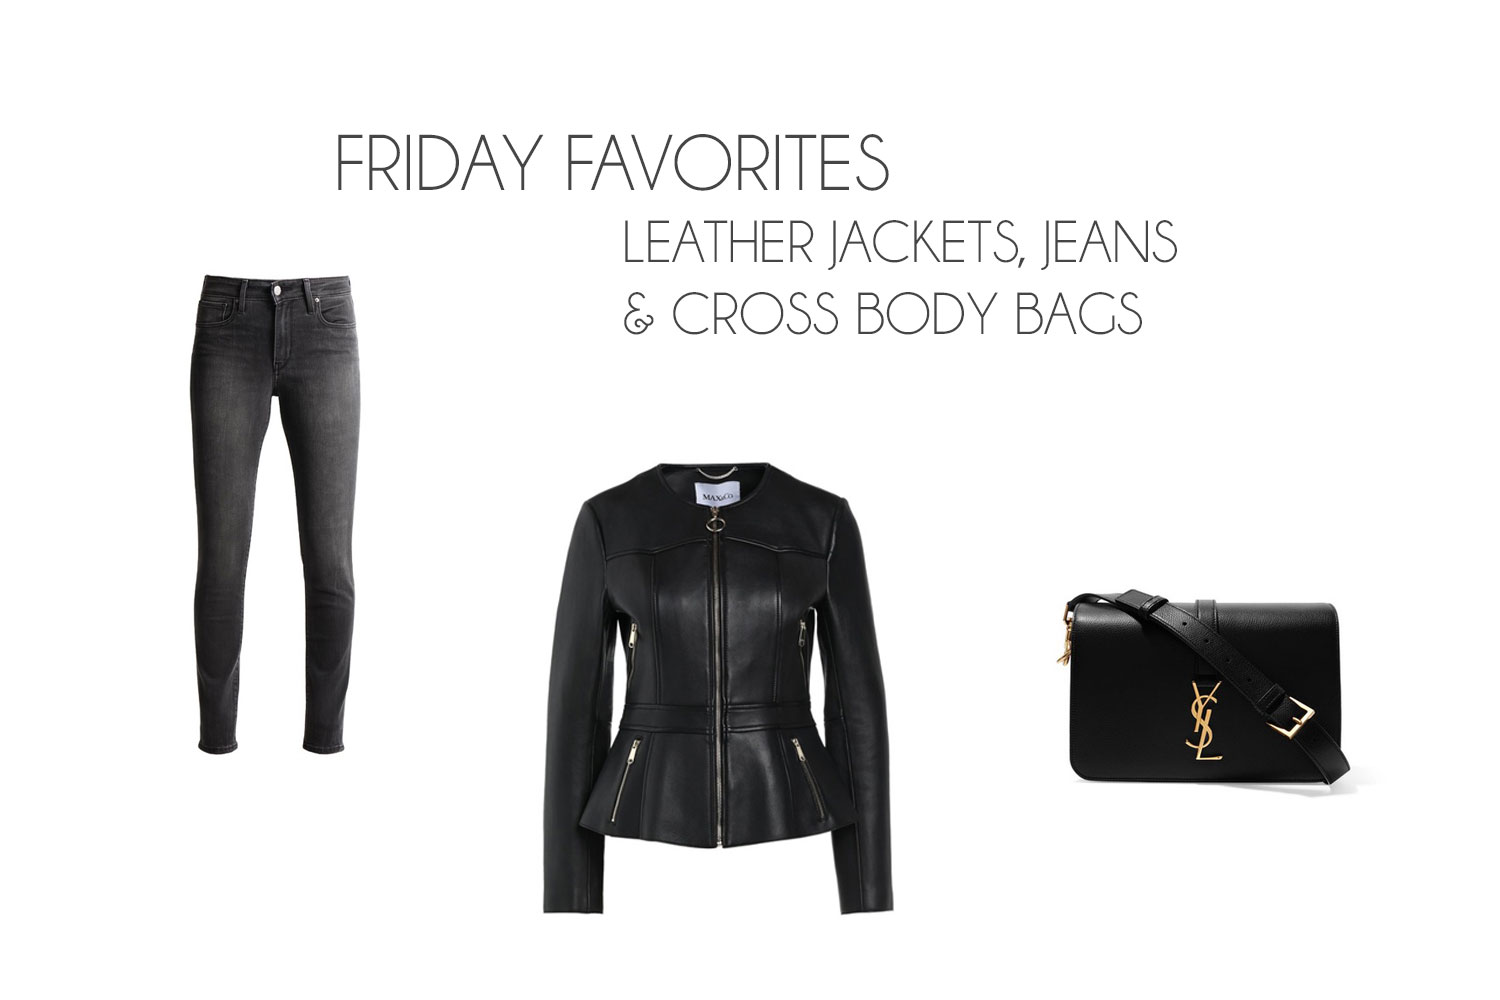 Friday Favorites: Leather Jackets, Jeans & Cross Body Bags